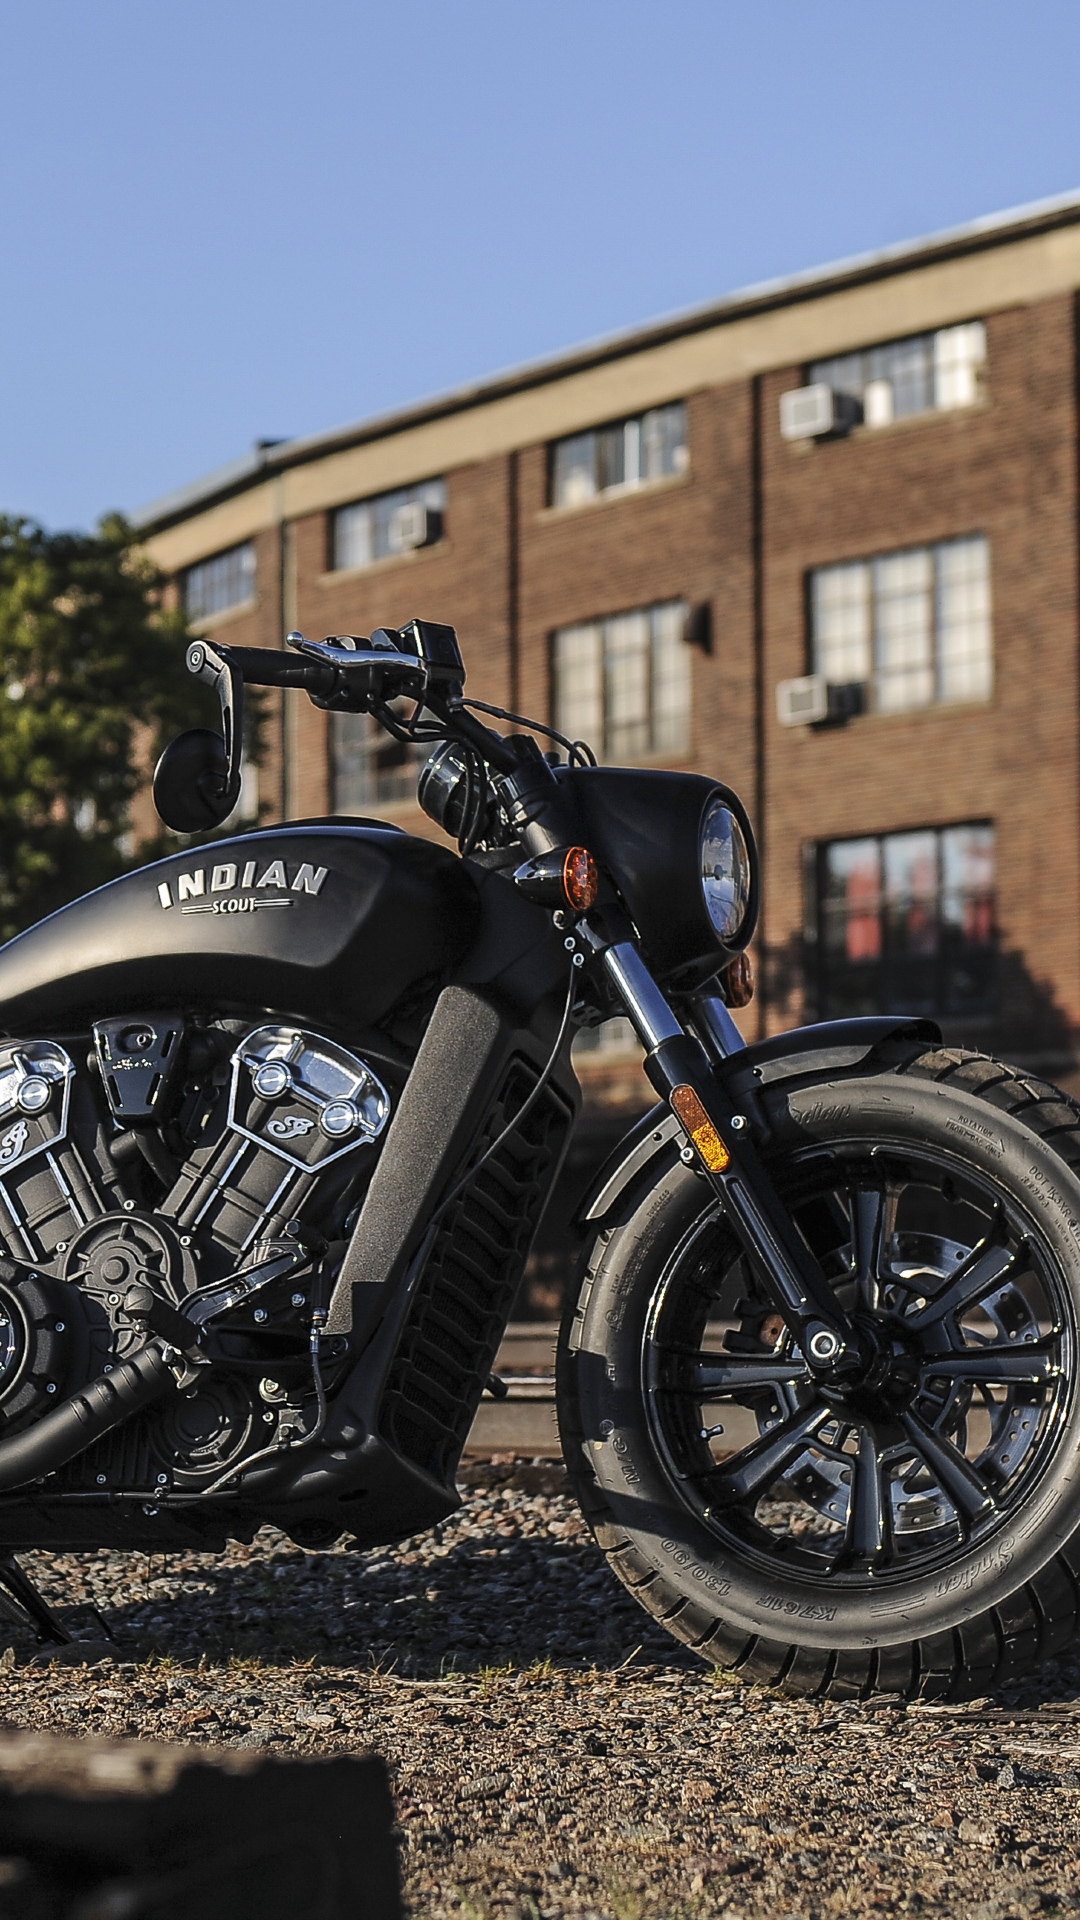 1080x1920 American Motorcycles Indian Scout Bobber 2018 Iphone 7 1080x1920